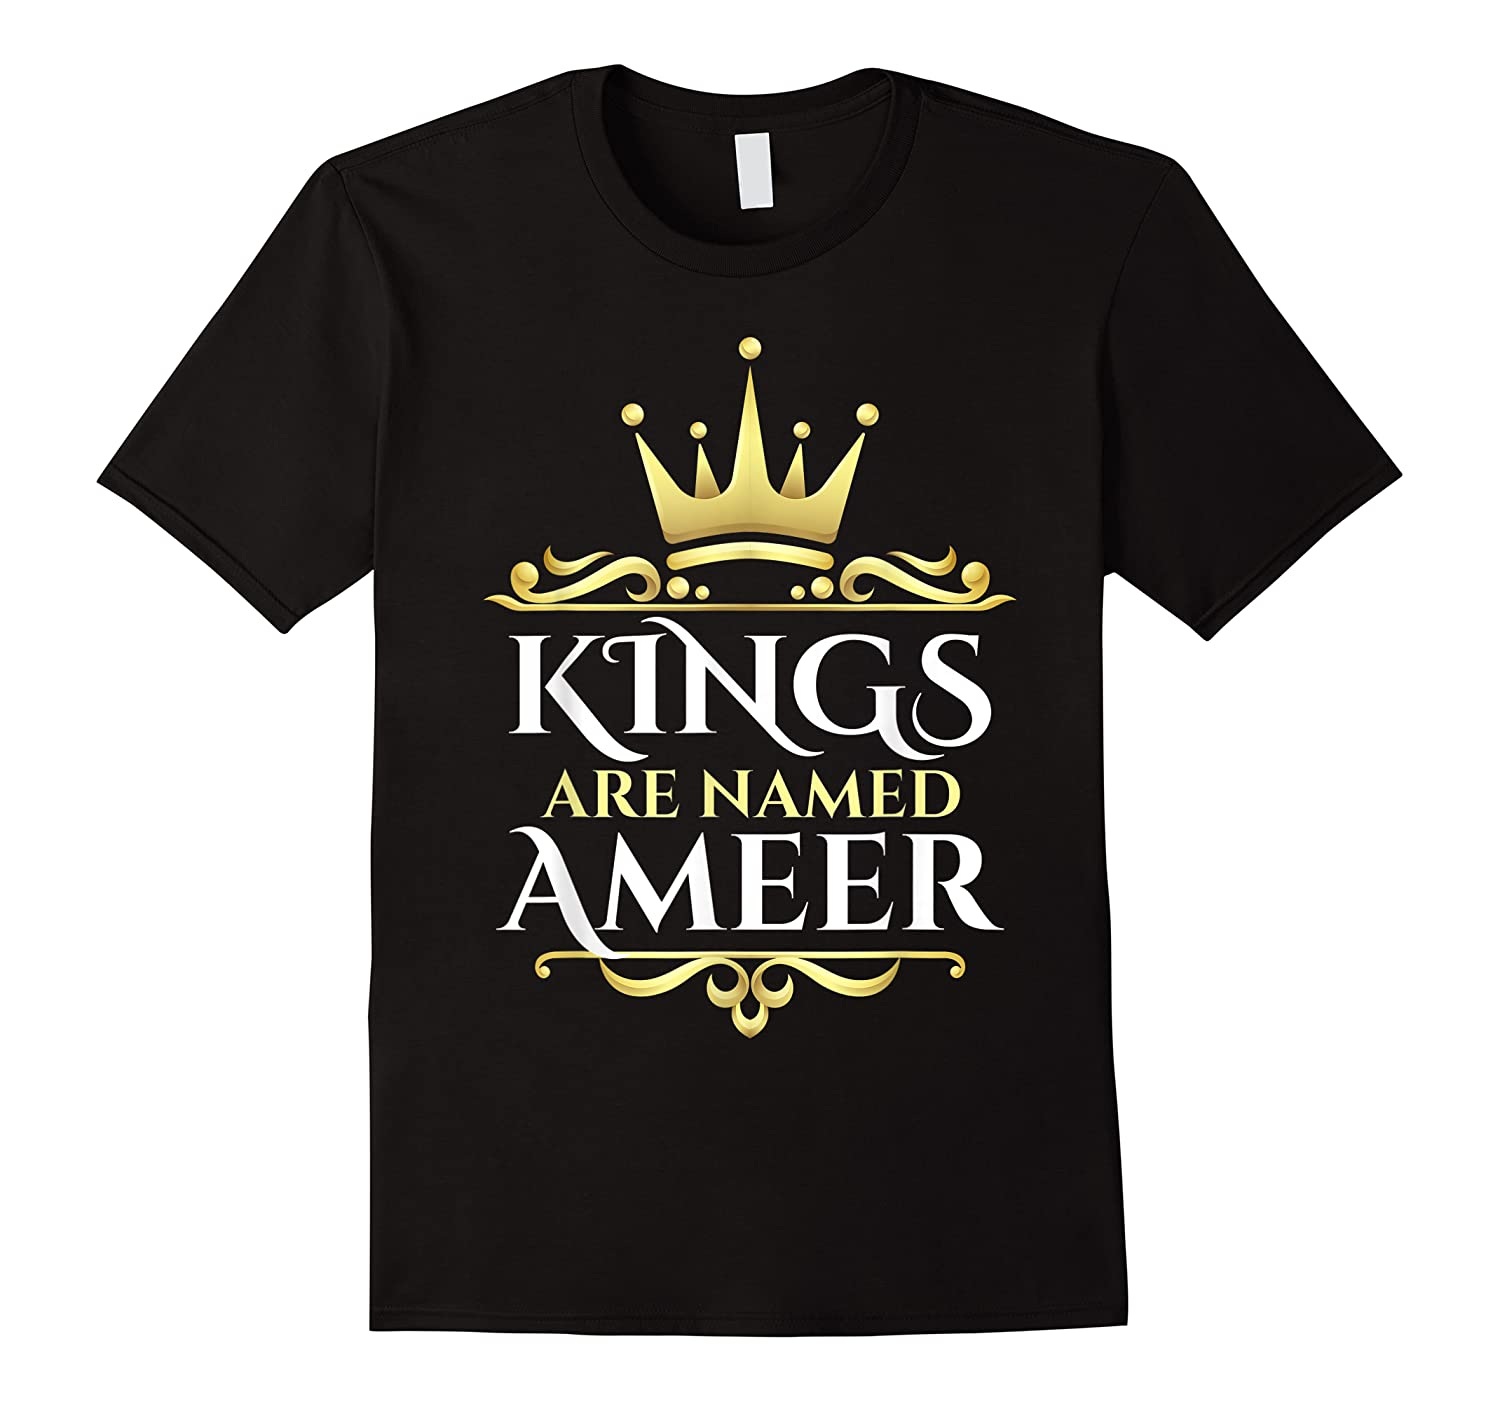 Kings Are Named Ameer T-shirt